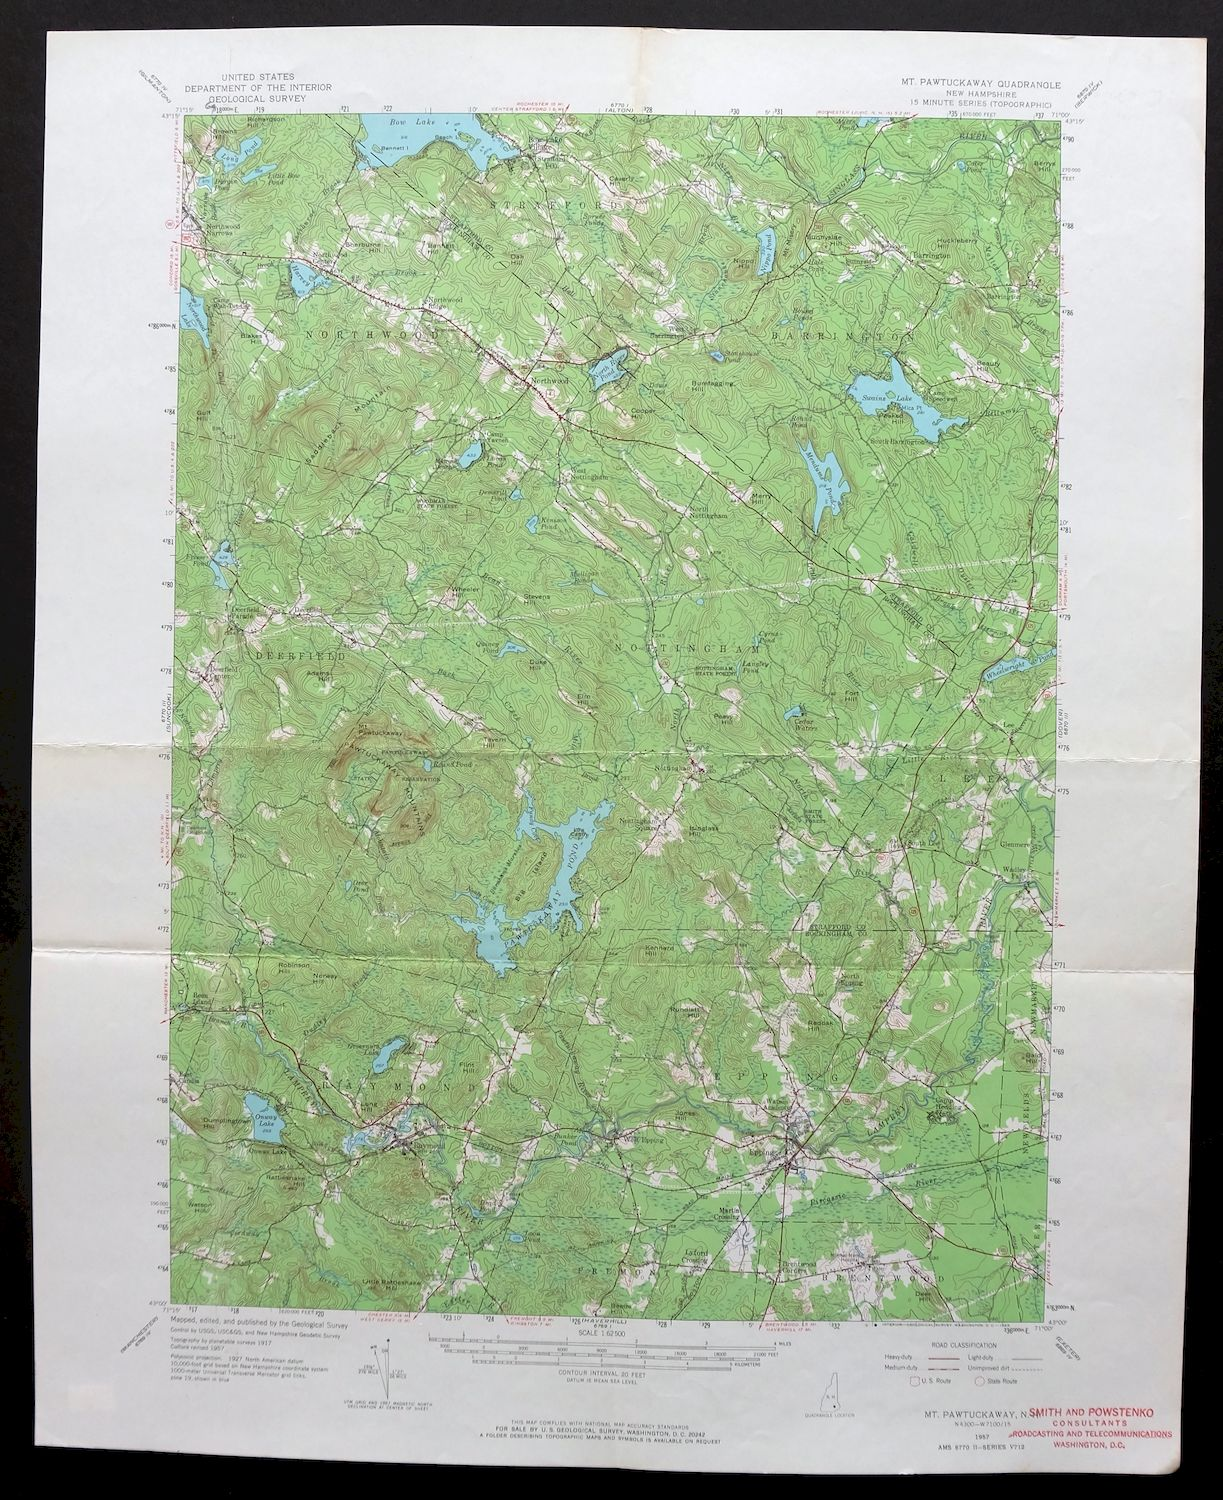 Details about 1957 Mount Pawtuckaway New Hampshire Raymond Epping Vintage on